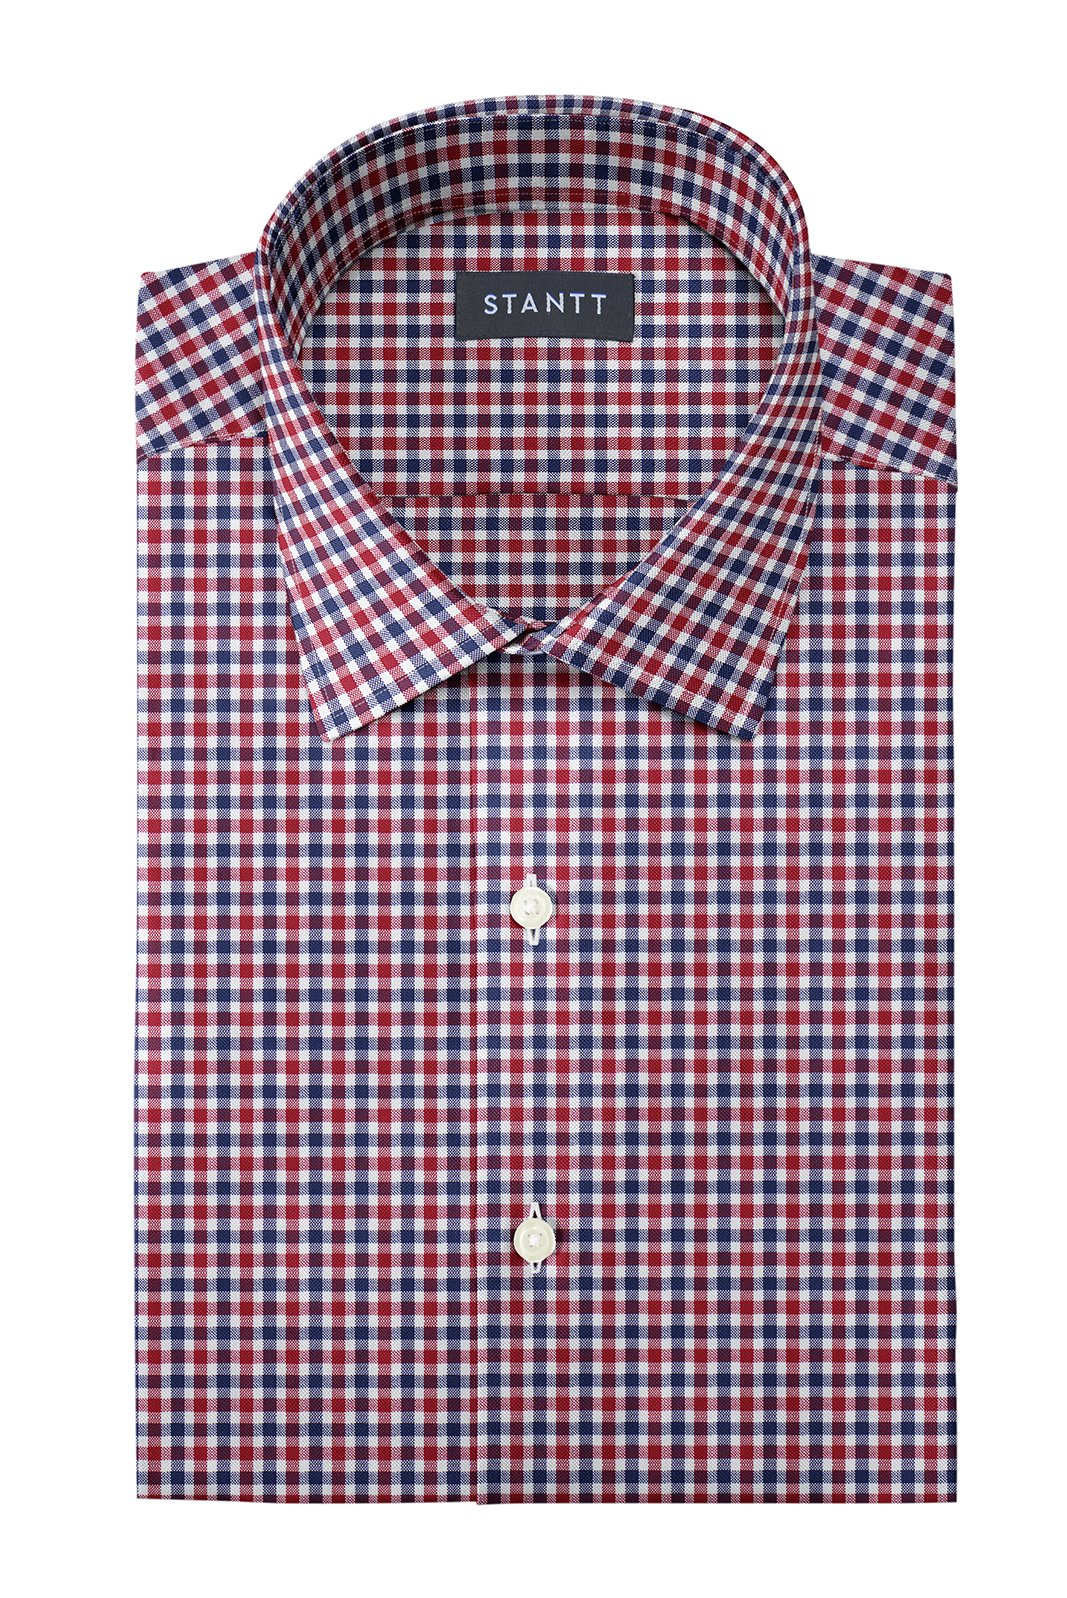 Red and Navy Club Check Oxford: Modified-Spread Collar, Barrel Cuff